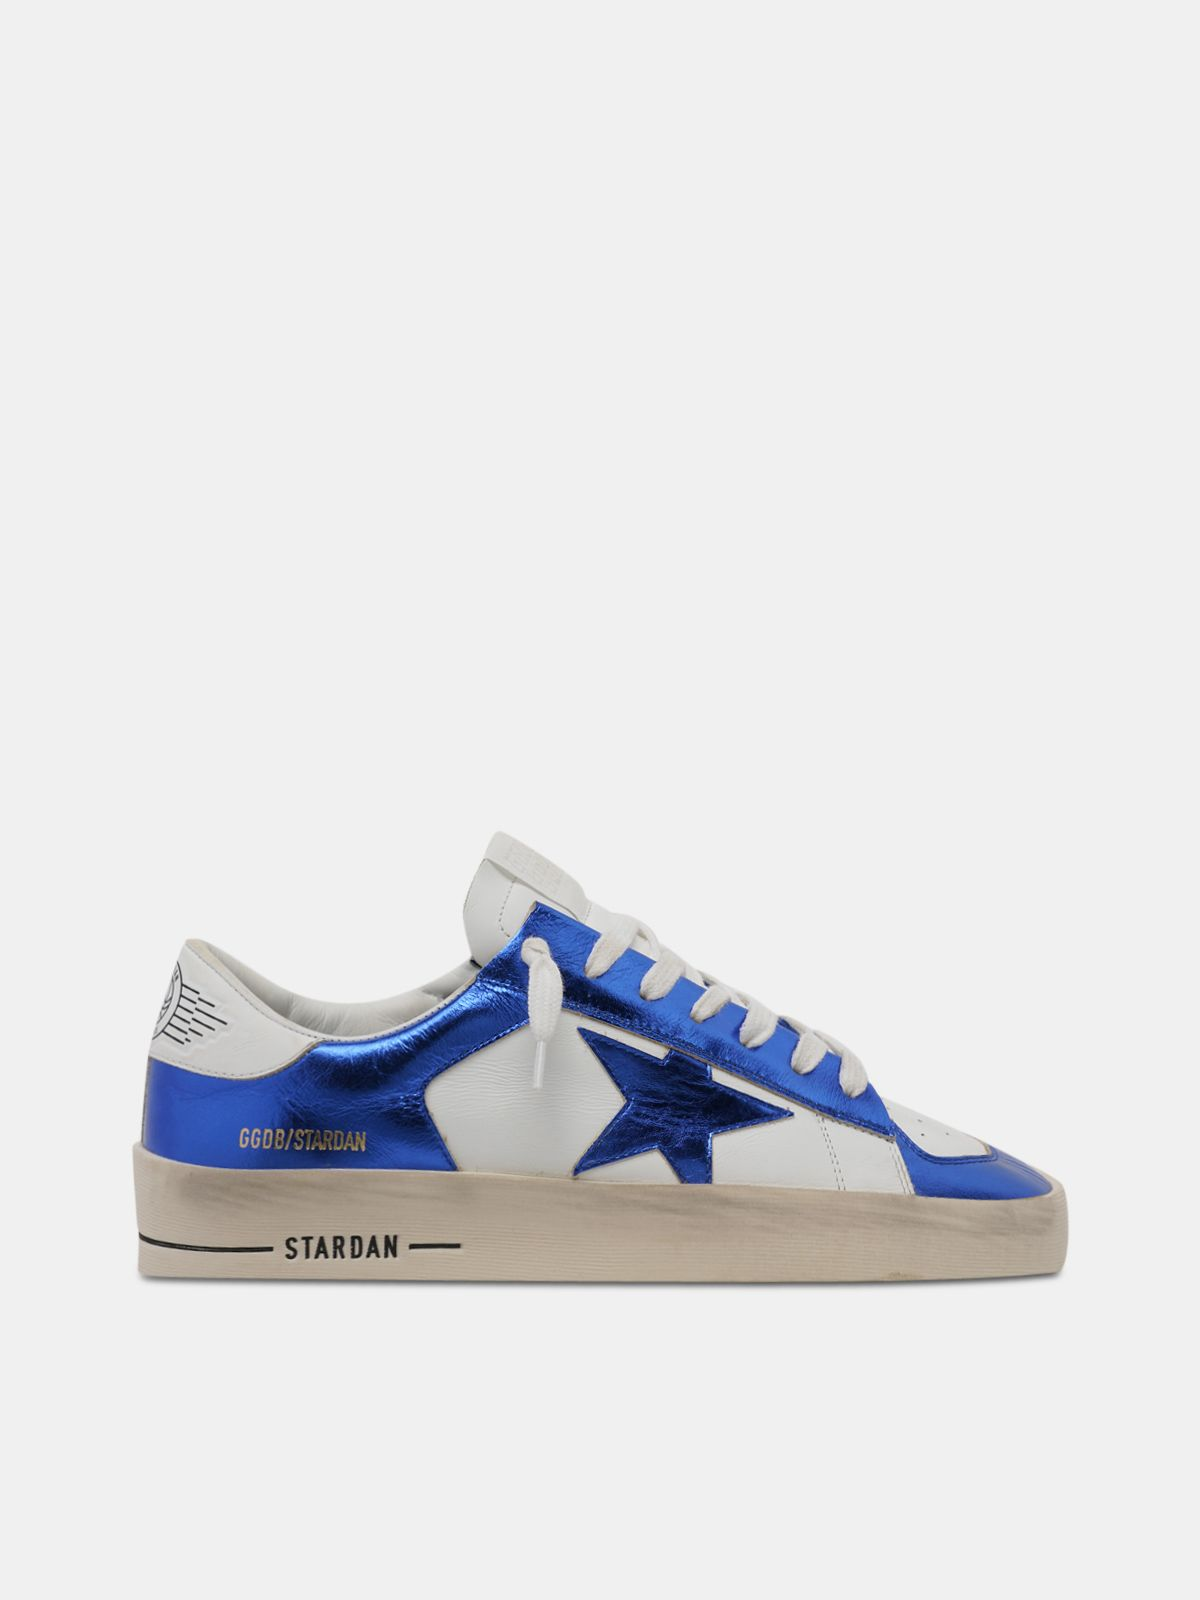 Women's blue and white Stardan sneakers